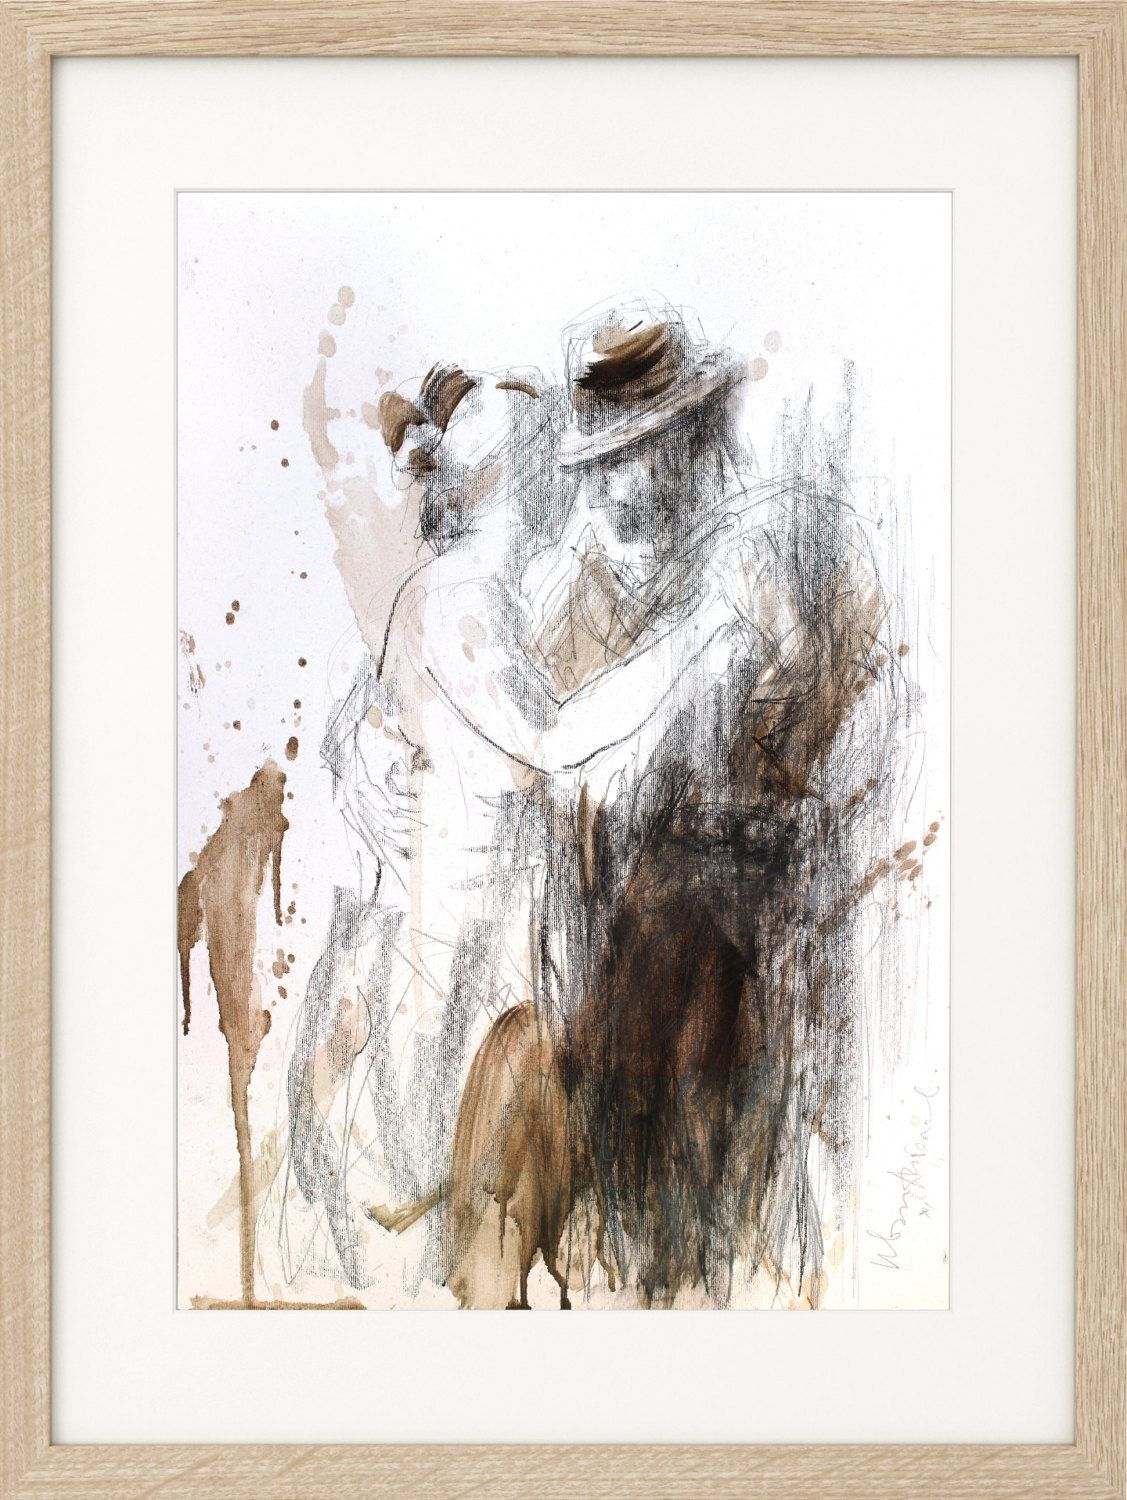 Charcoal sketch original artistic drawing dancing couple charcoal sketch original artistic drawing dancing couple figurative wall art modern graphic amipublicfo Image collections